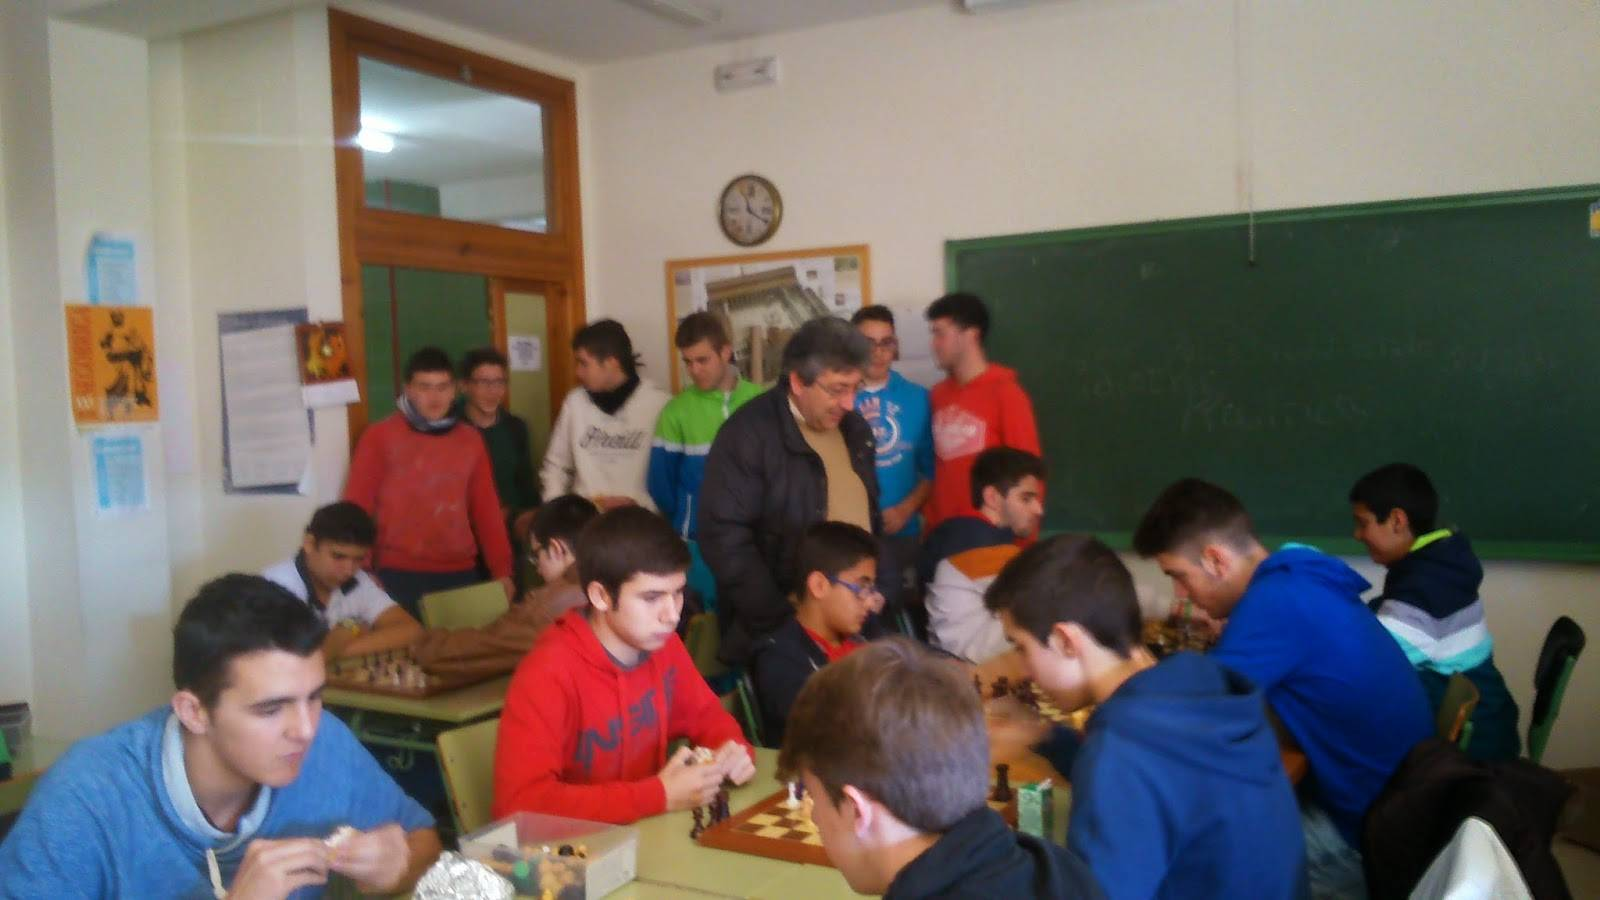 I Campeonato de ajedrez Anthropos3